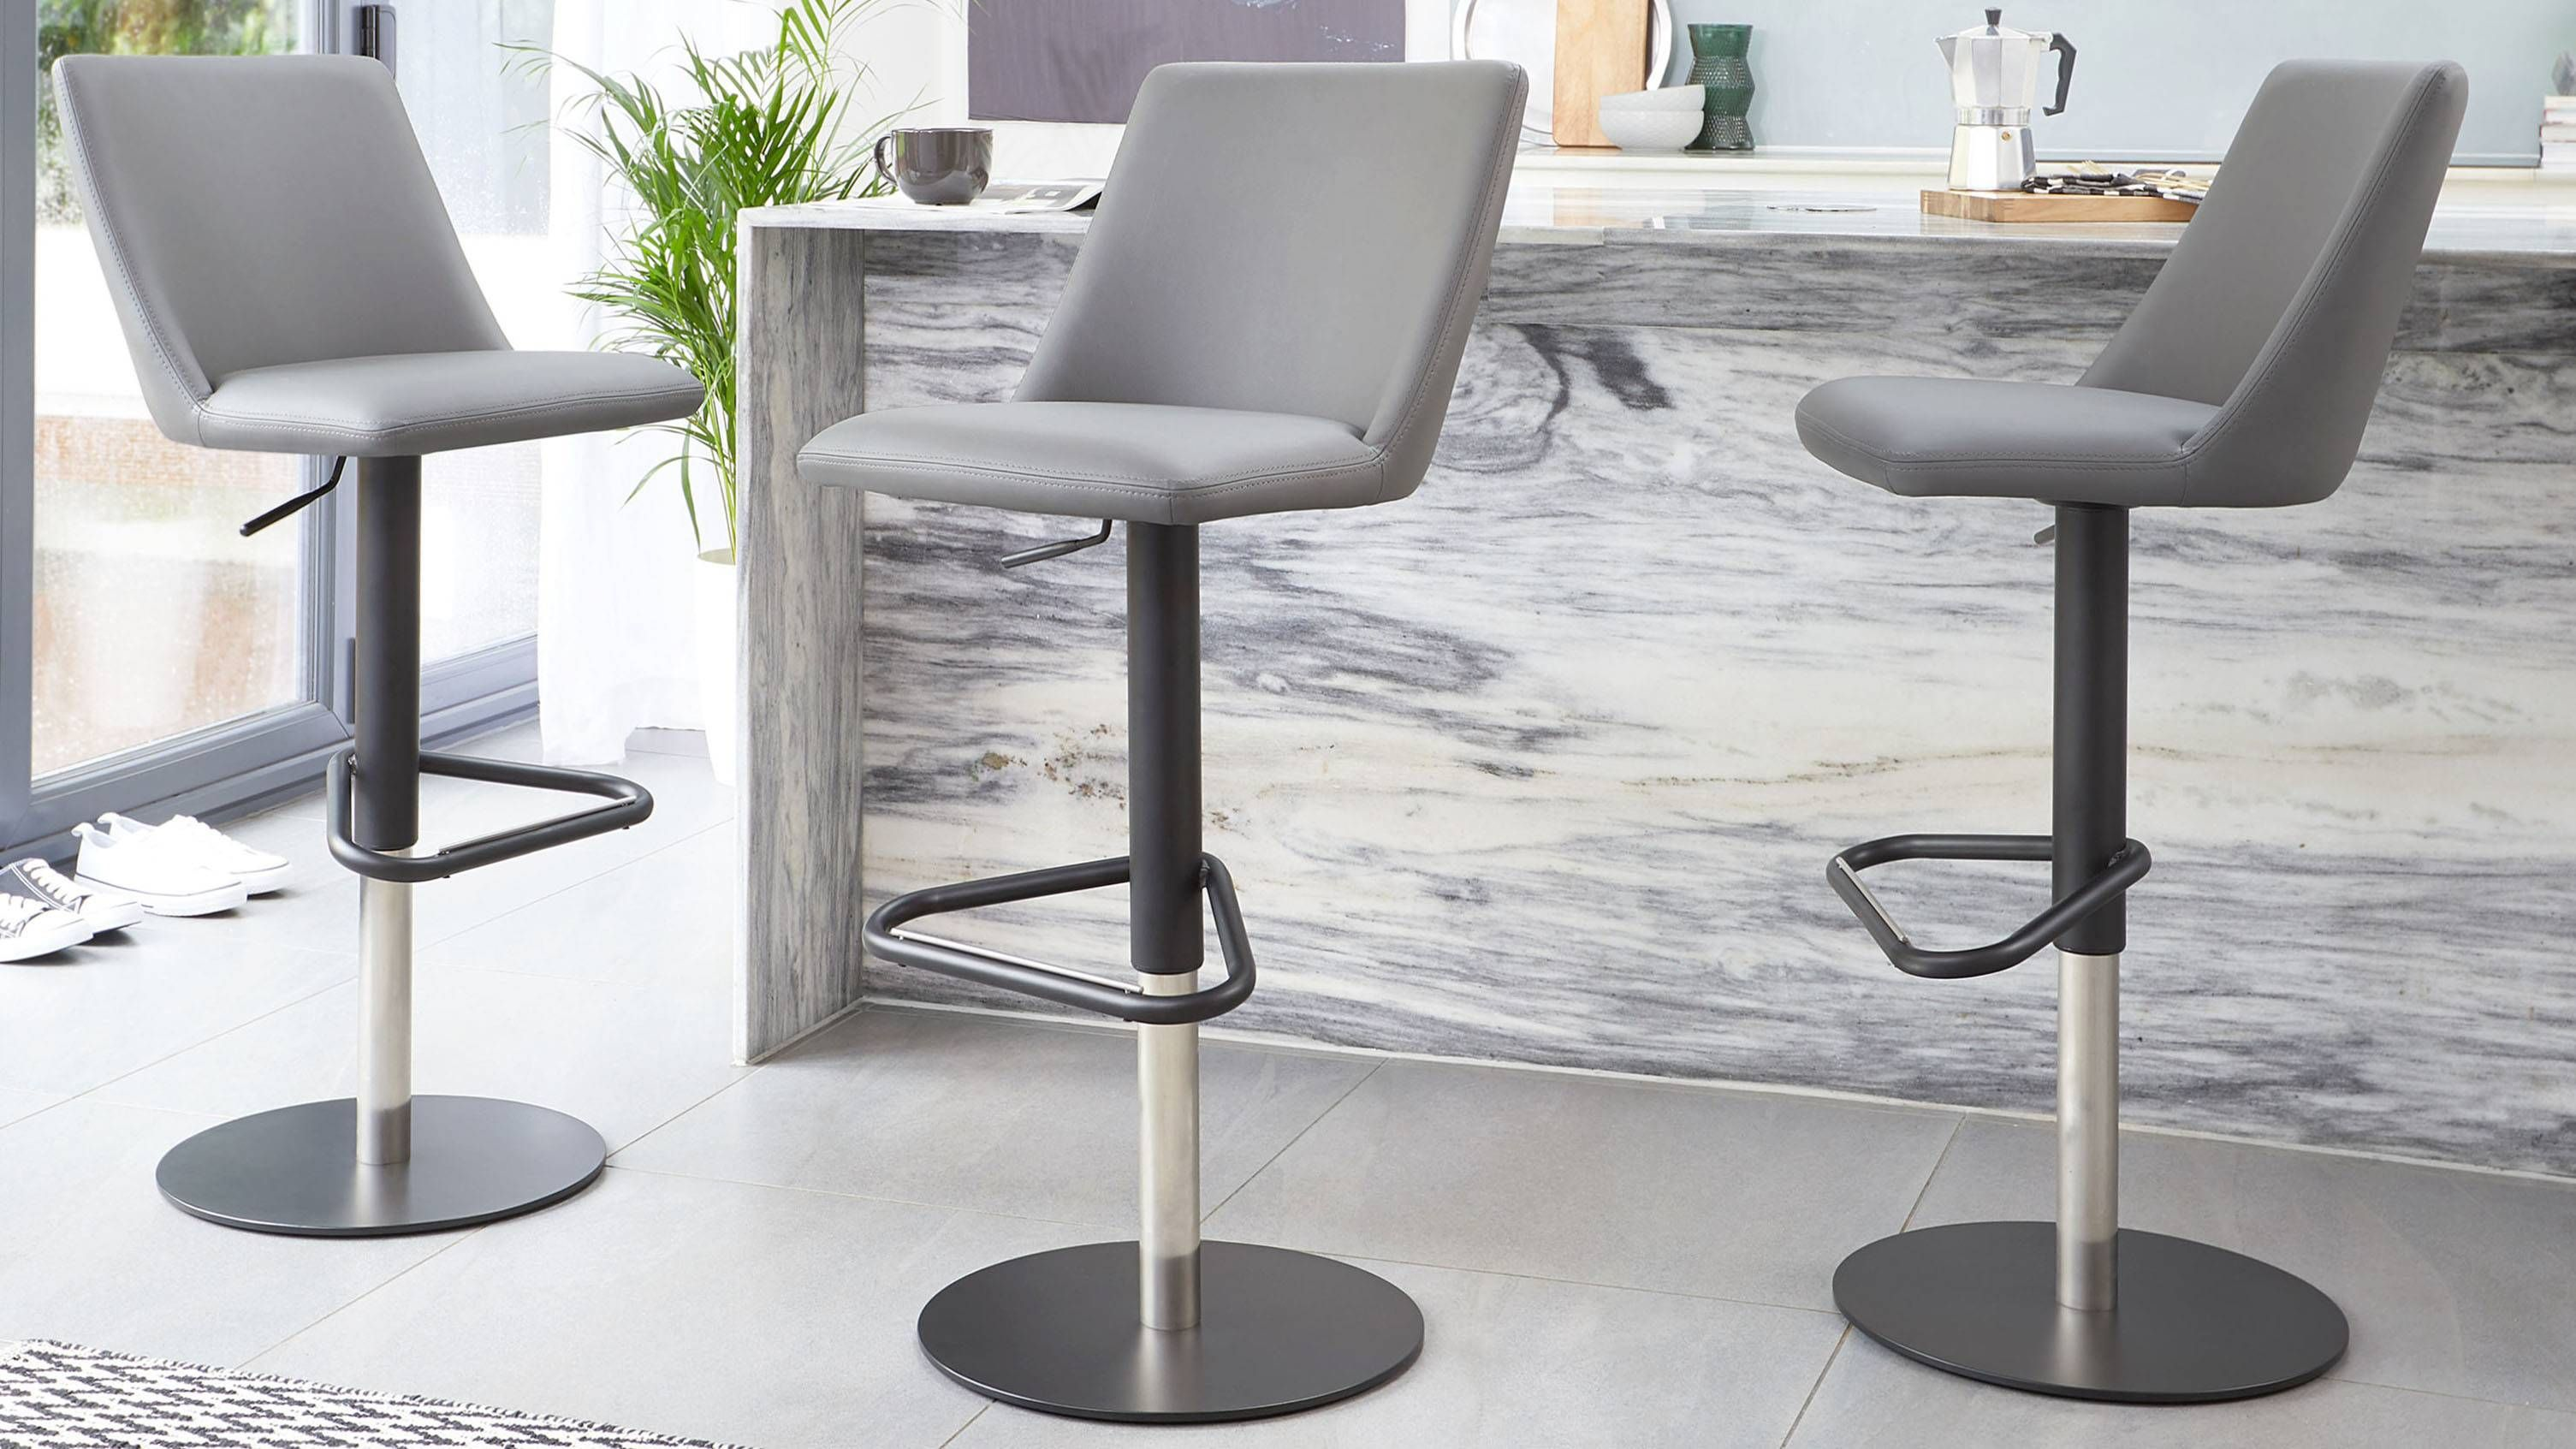 Magnificent Dante Matt Black Gas Lift Bar Stool In 2019 Modern Bar Pdpeps Interior Chair Design Pdpepsorg